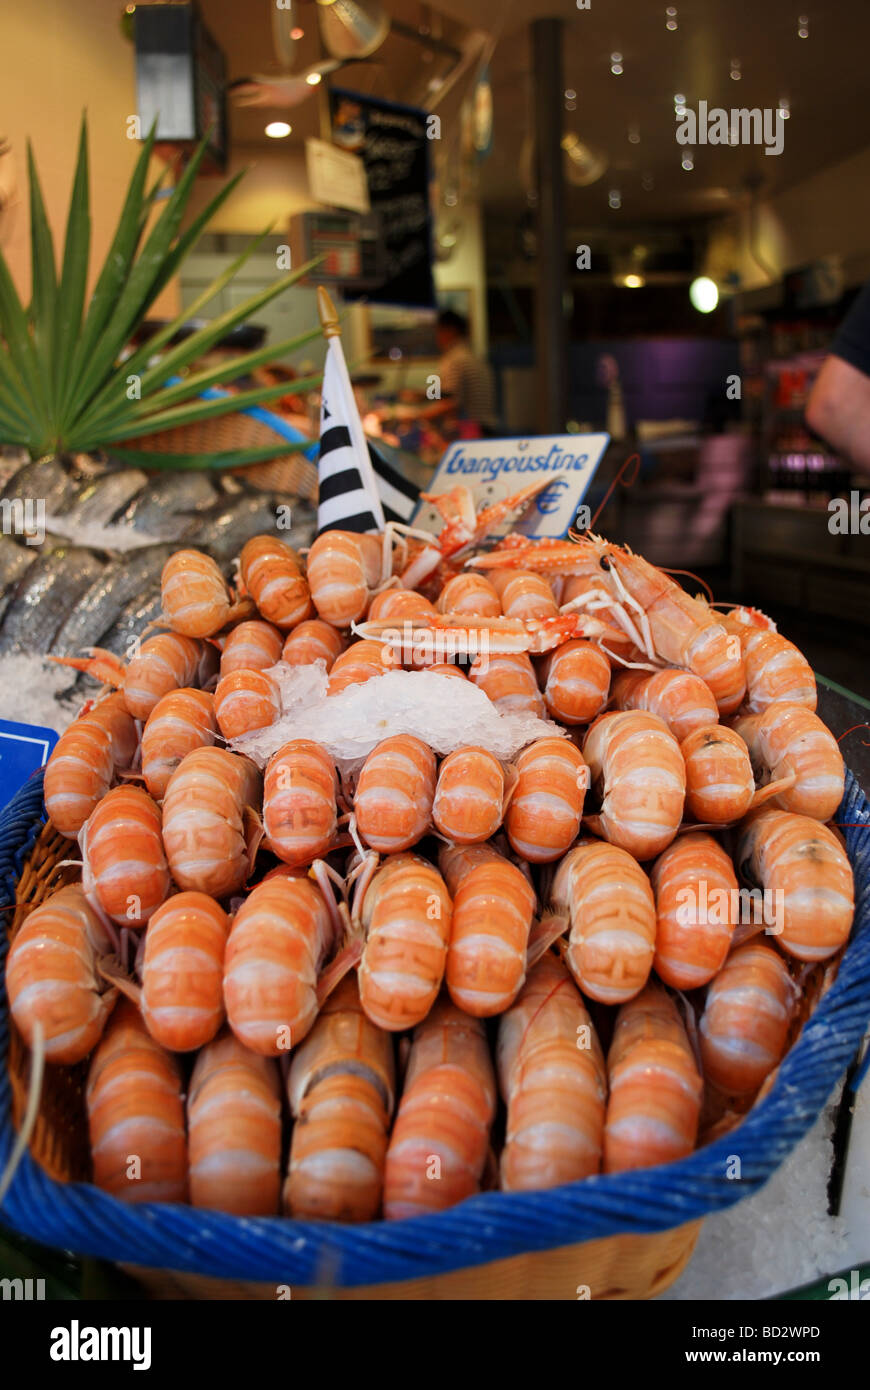 France Paris A pile of shrimps on display at an entrance to a restaurant - Stock Image